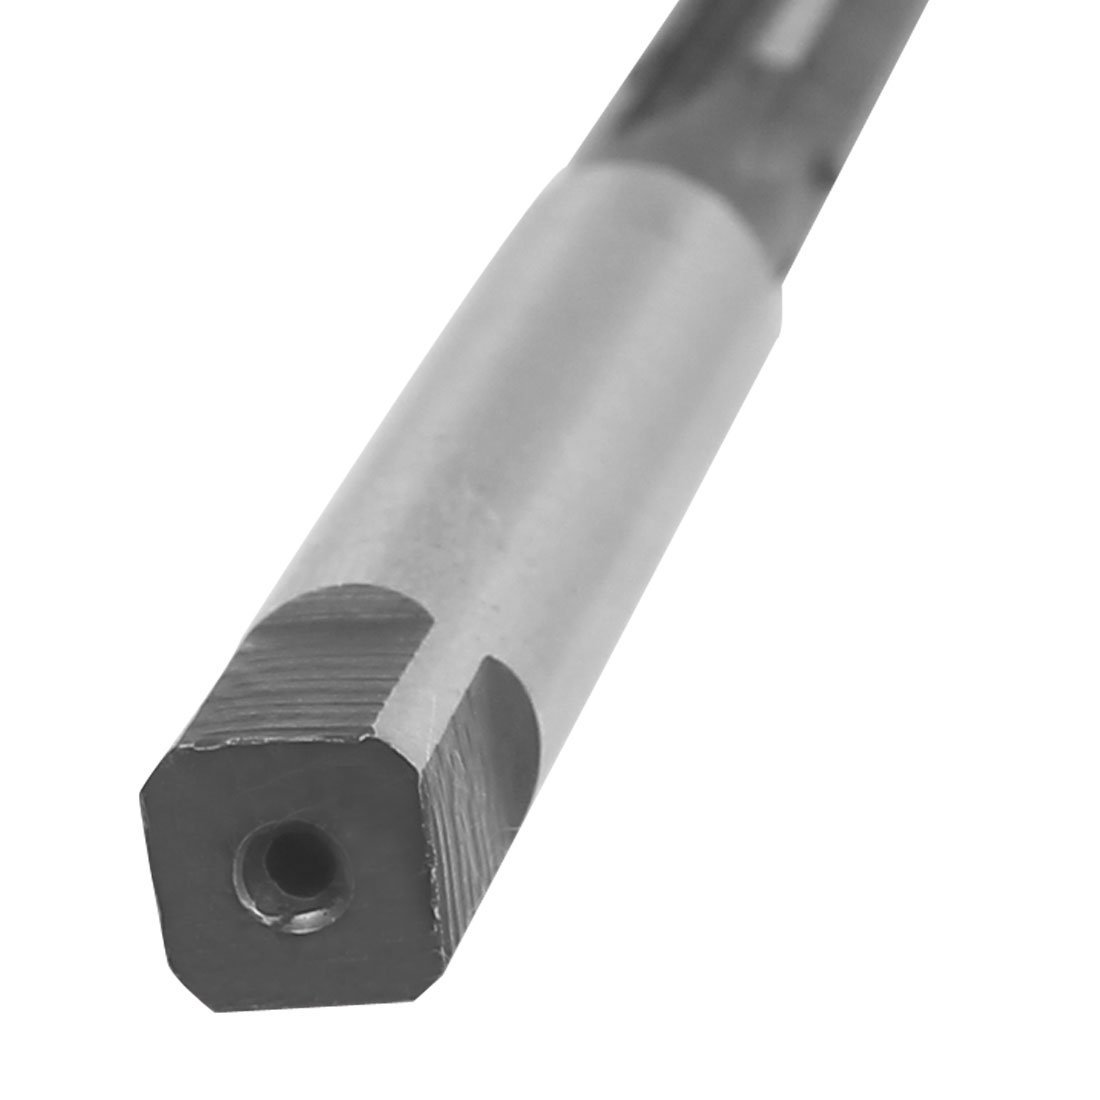 DealMux 155mm Long 5//8 inch Cutting Dia 6 Flutes Straight Shank Tool Steel Hand Reamer